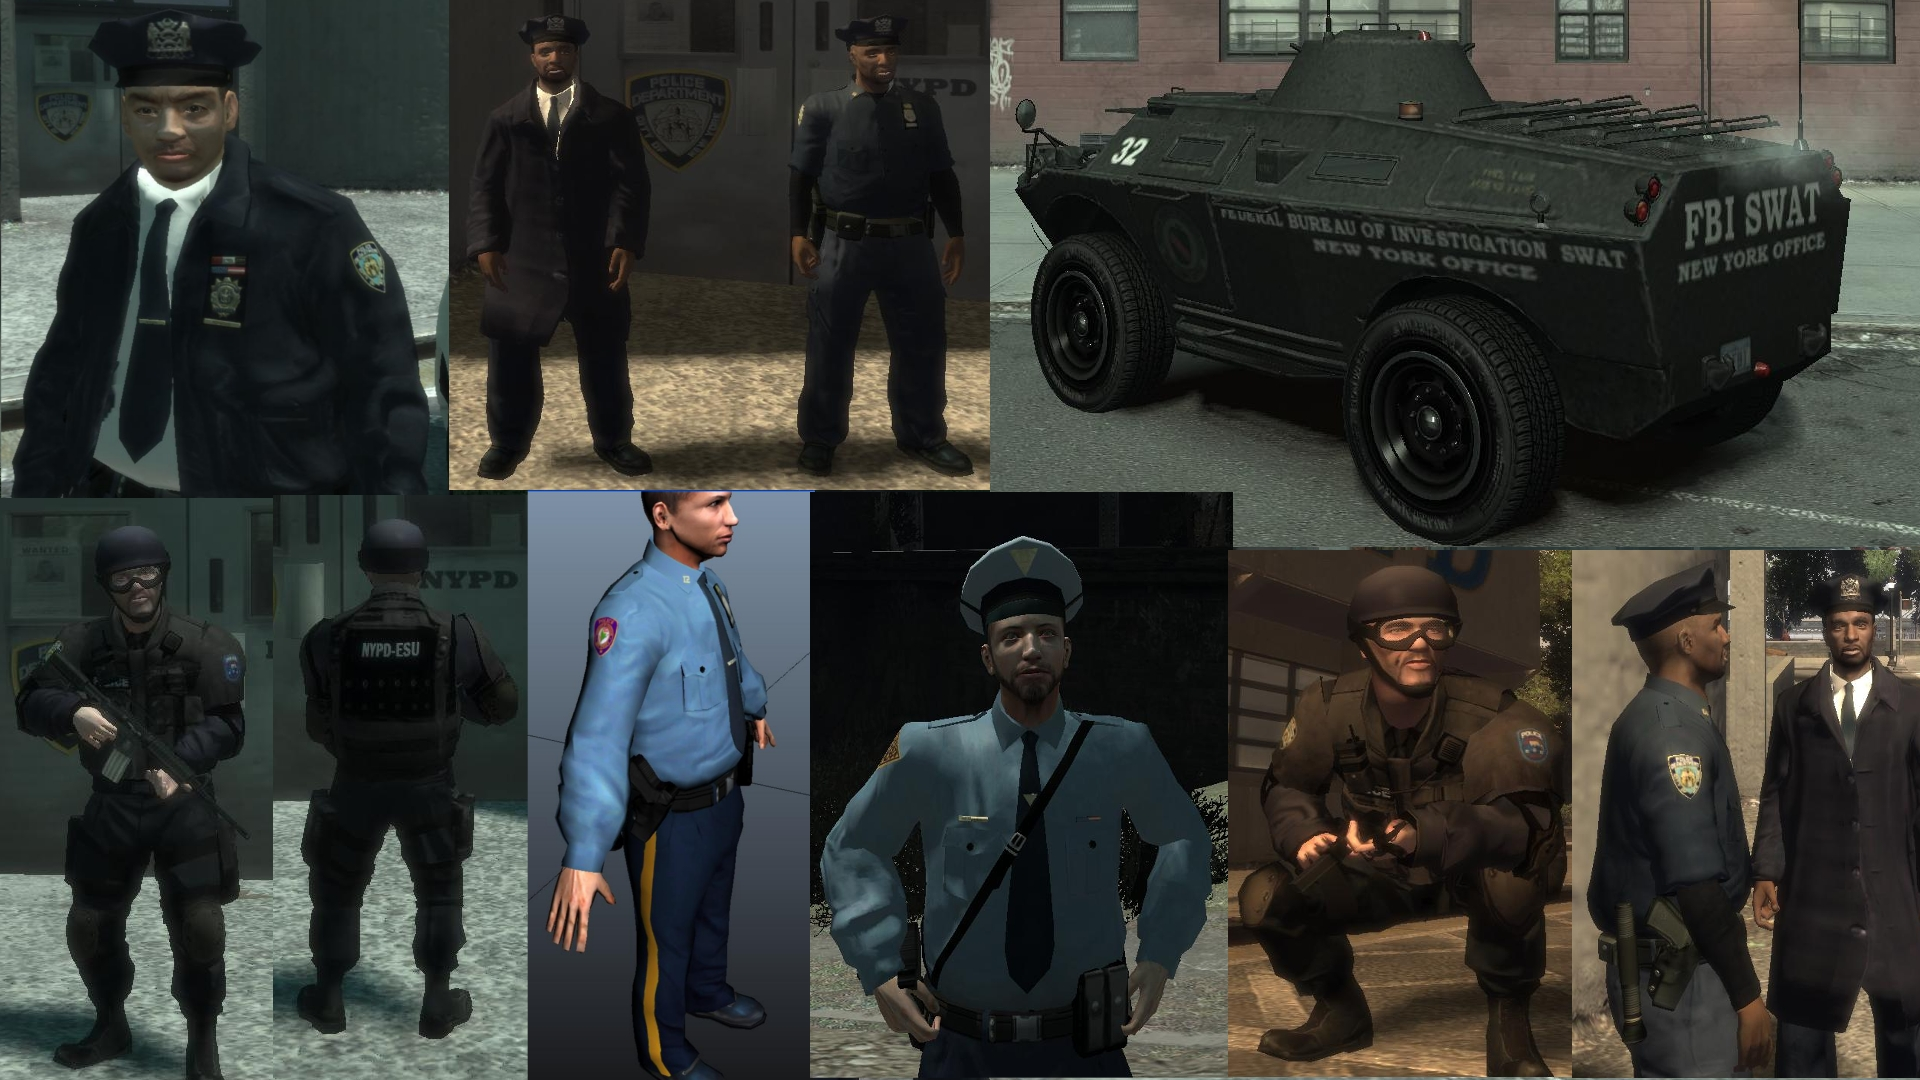 Where To Find Police Uniform In Gta 5 : Ash Cycles